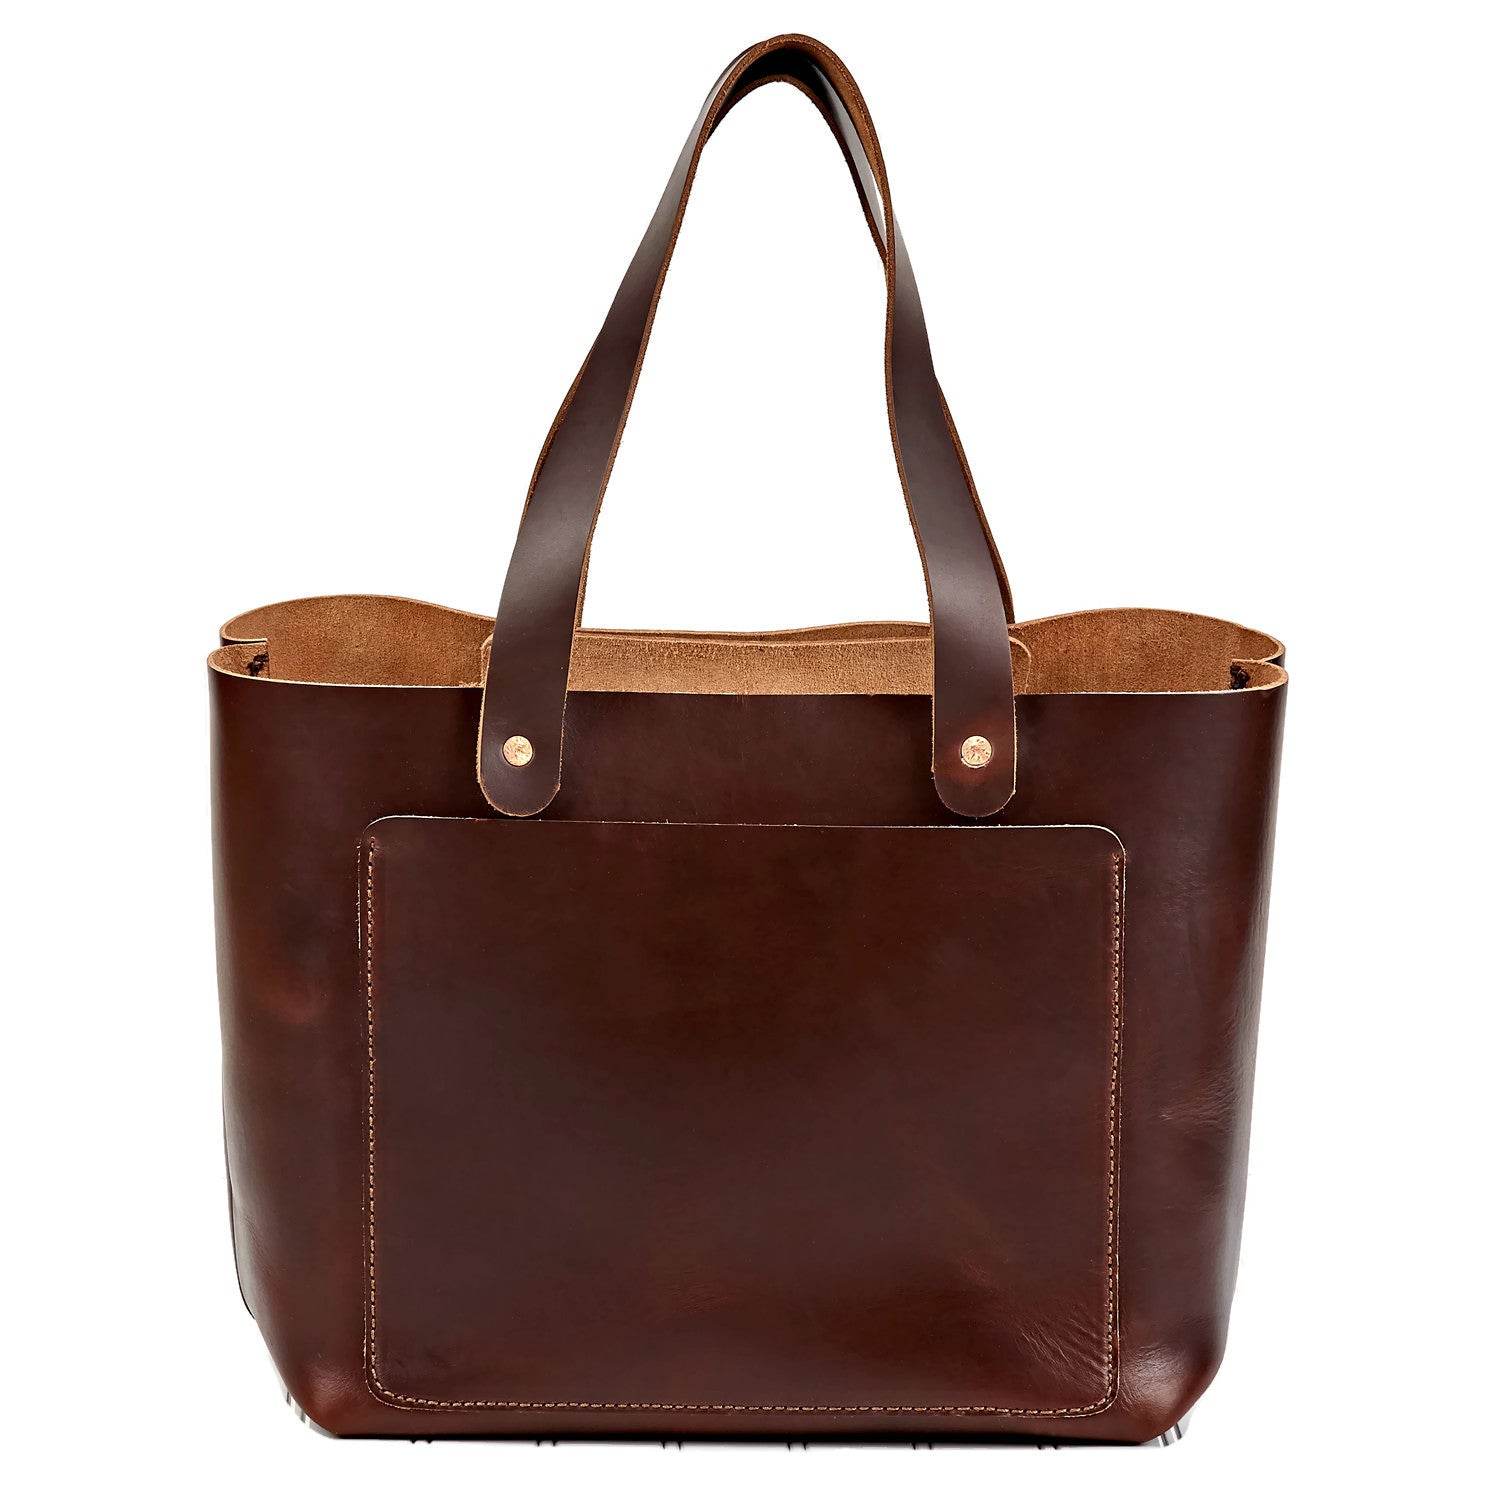 The Portsmouth Bag